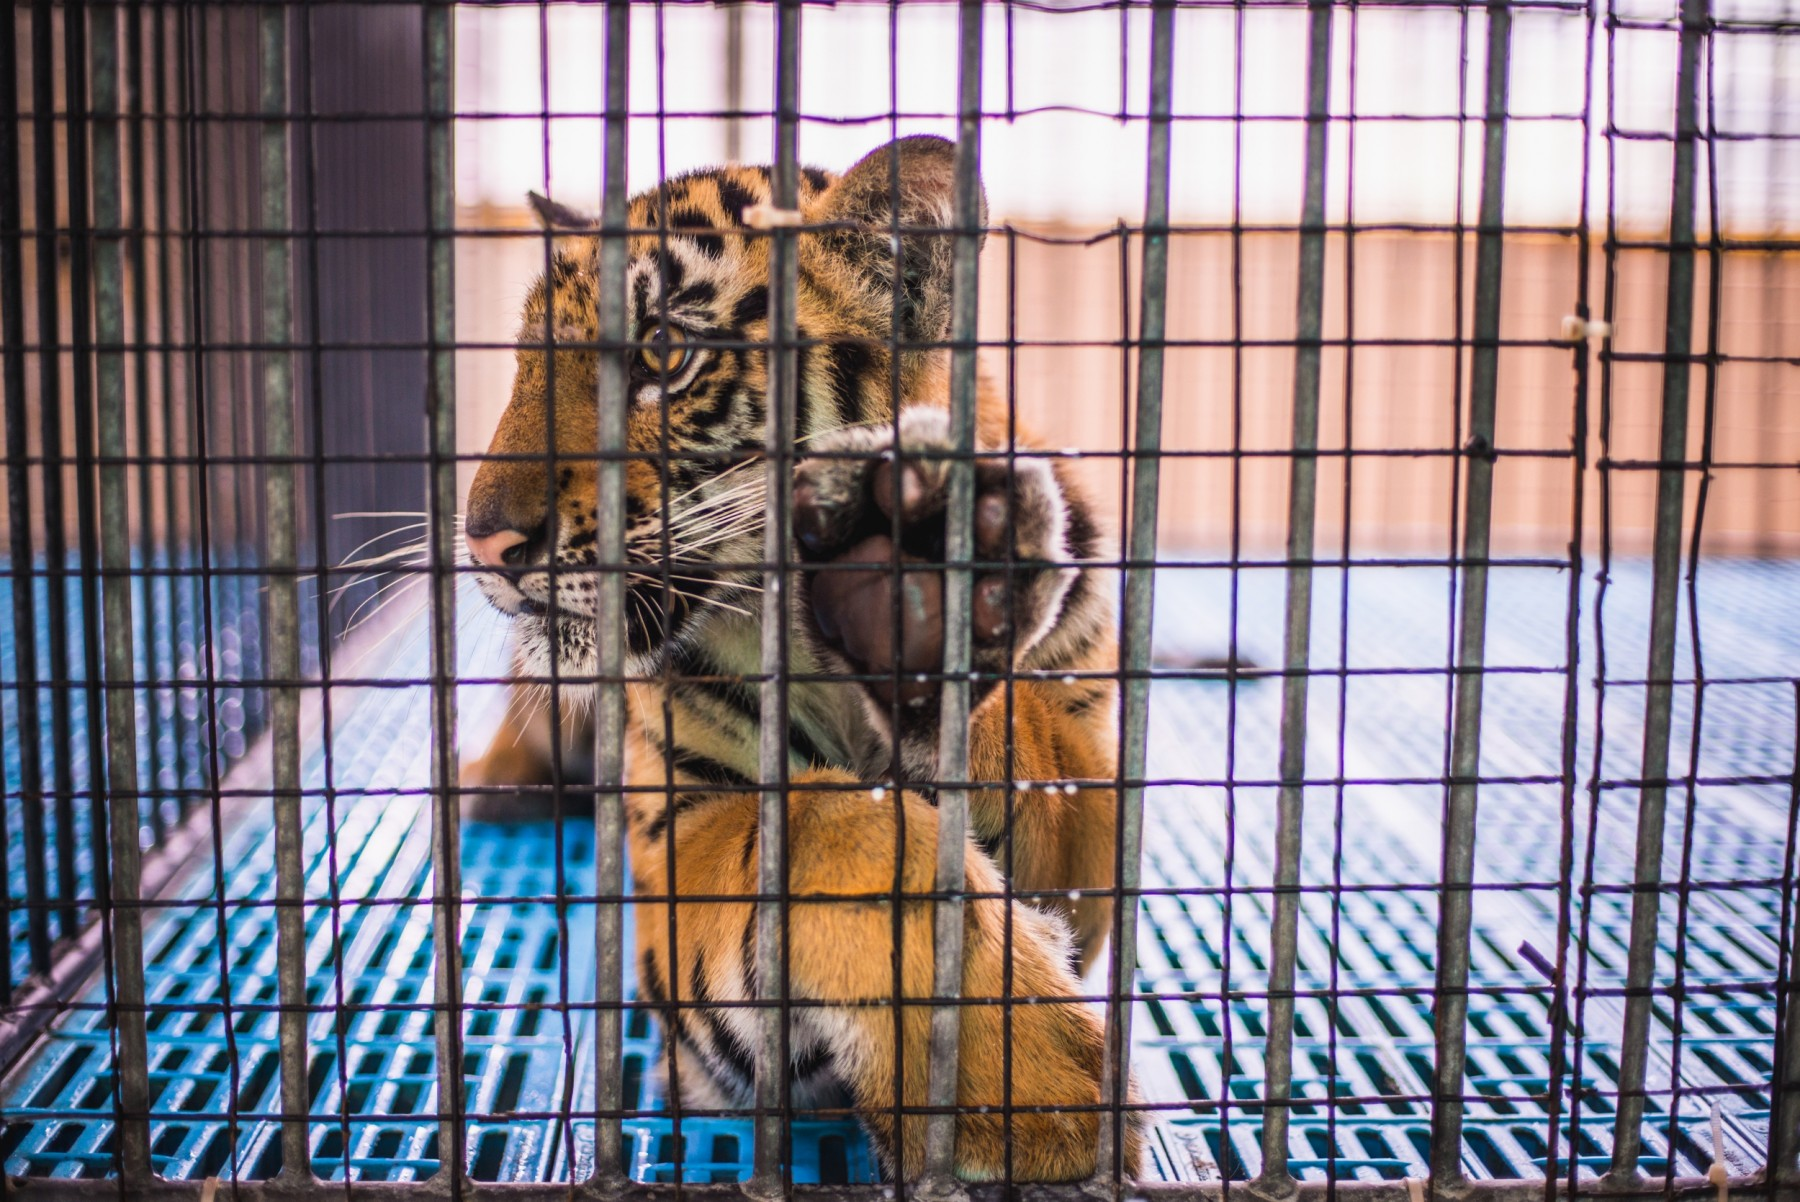 A captive tiger cub spends the entire day in this tiny cage.